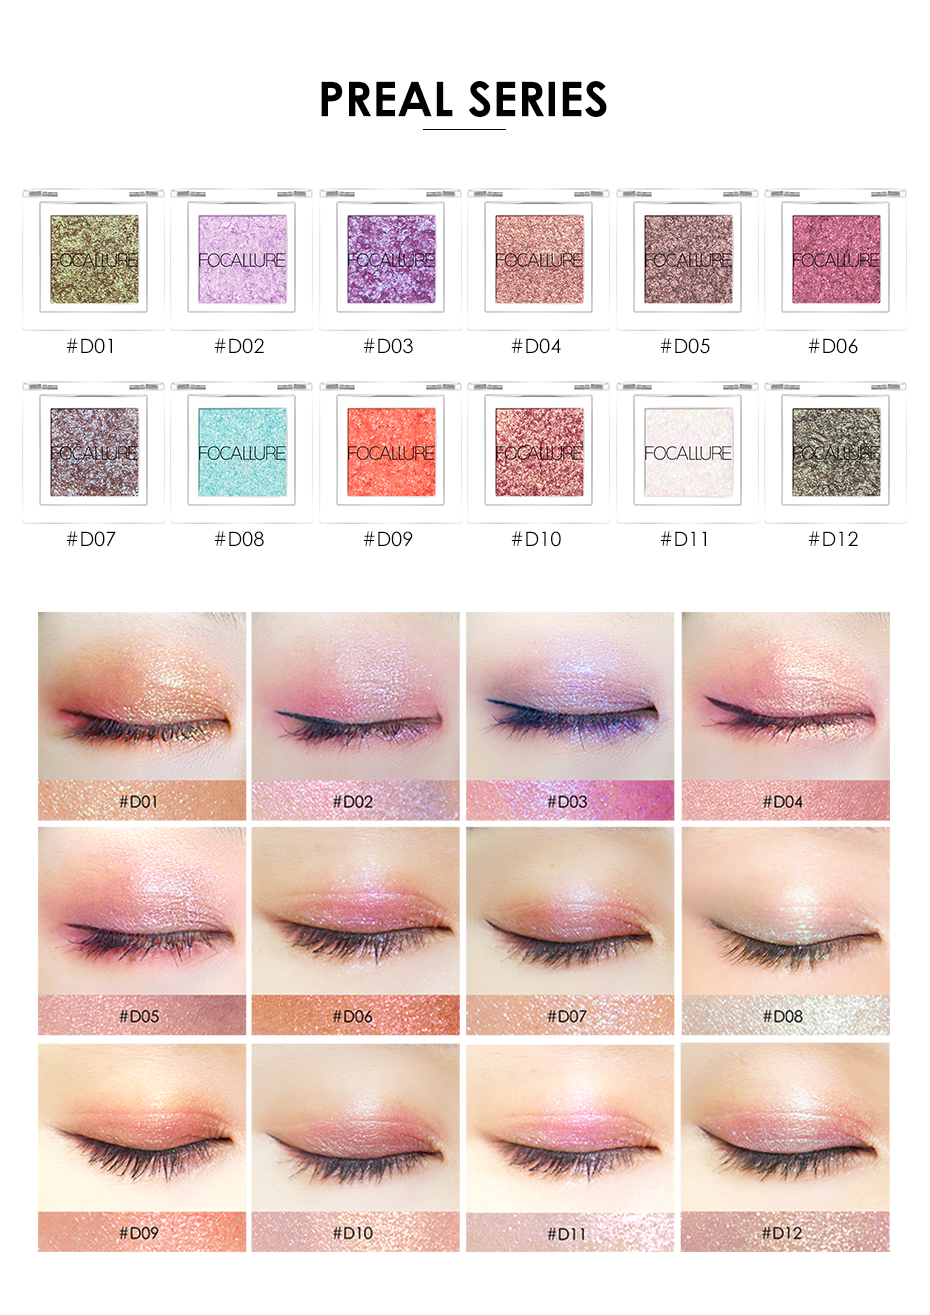 Focallure Eyeshadow Glitter Powder Pigment Metallic Shiny Holographic Eye Toppers Single Eye Shadow Makeup